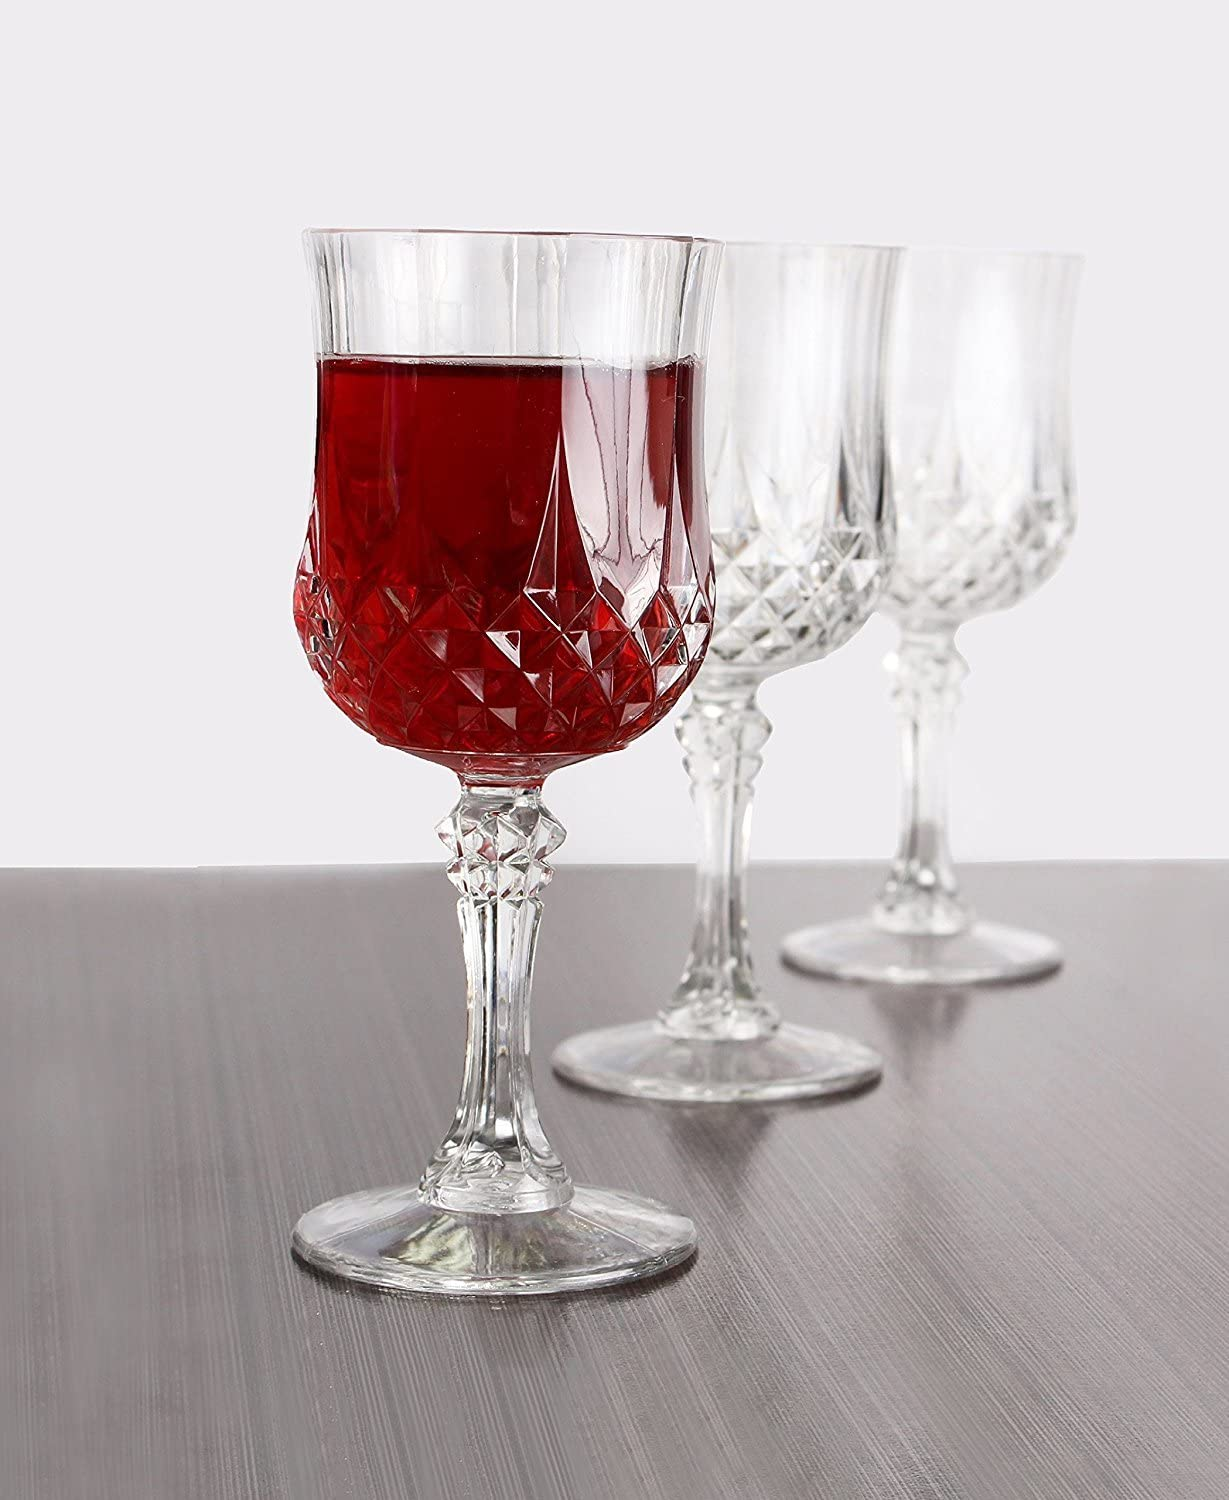 Elegant design Picnics Crystal-like Hard Unbreakable Disposable Plastic Perfect for Weddings Barbecues and other Events Simcha Collection Wine Glasses Size 8 Oz Pack of 4 bst COMINHKPR91016